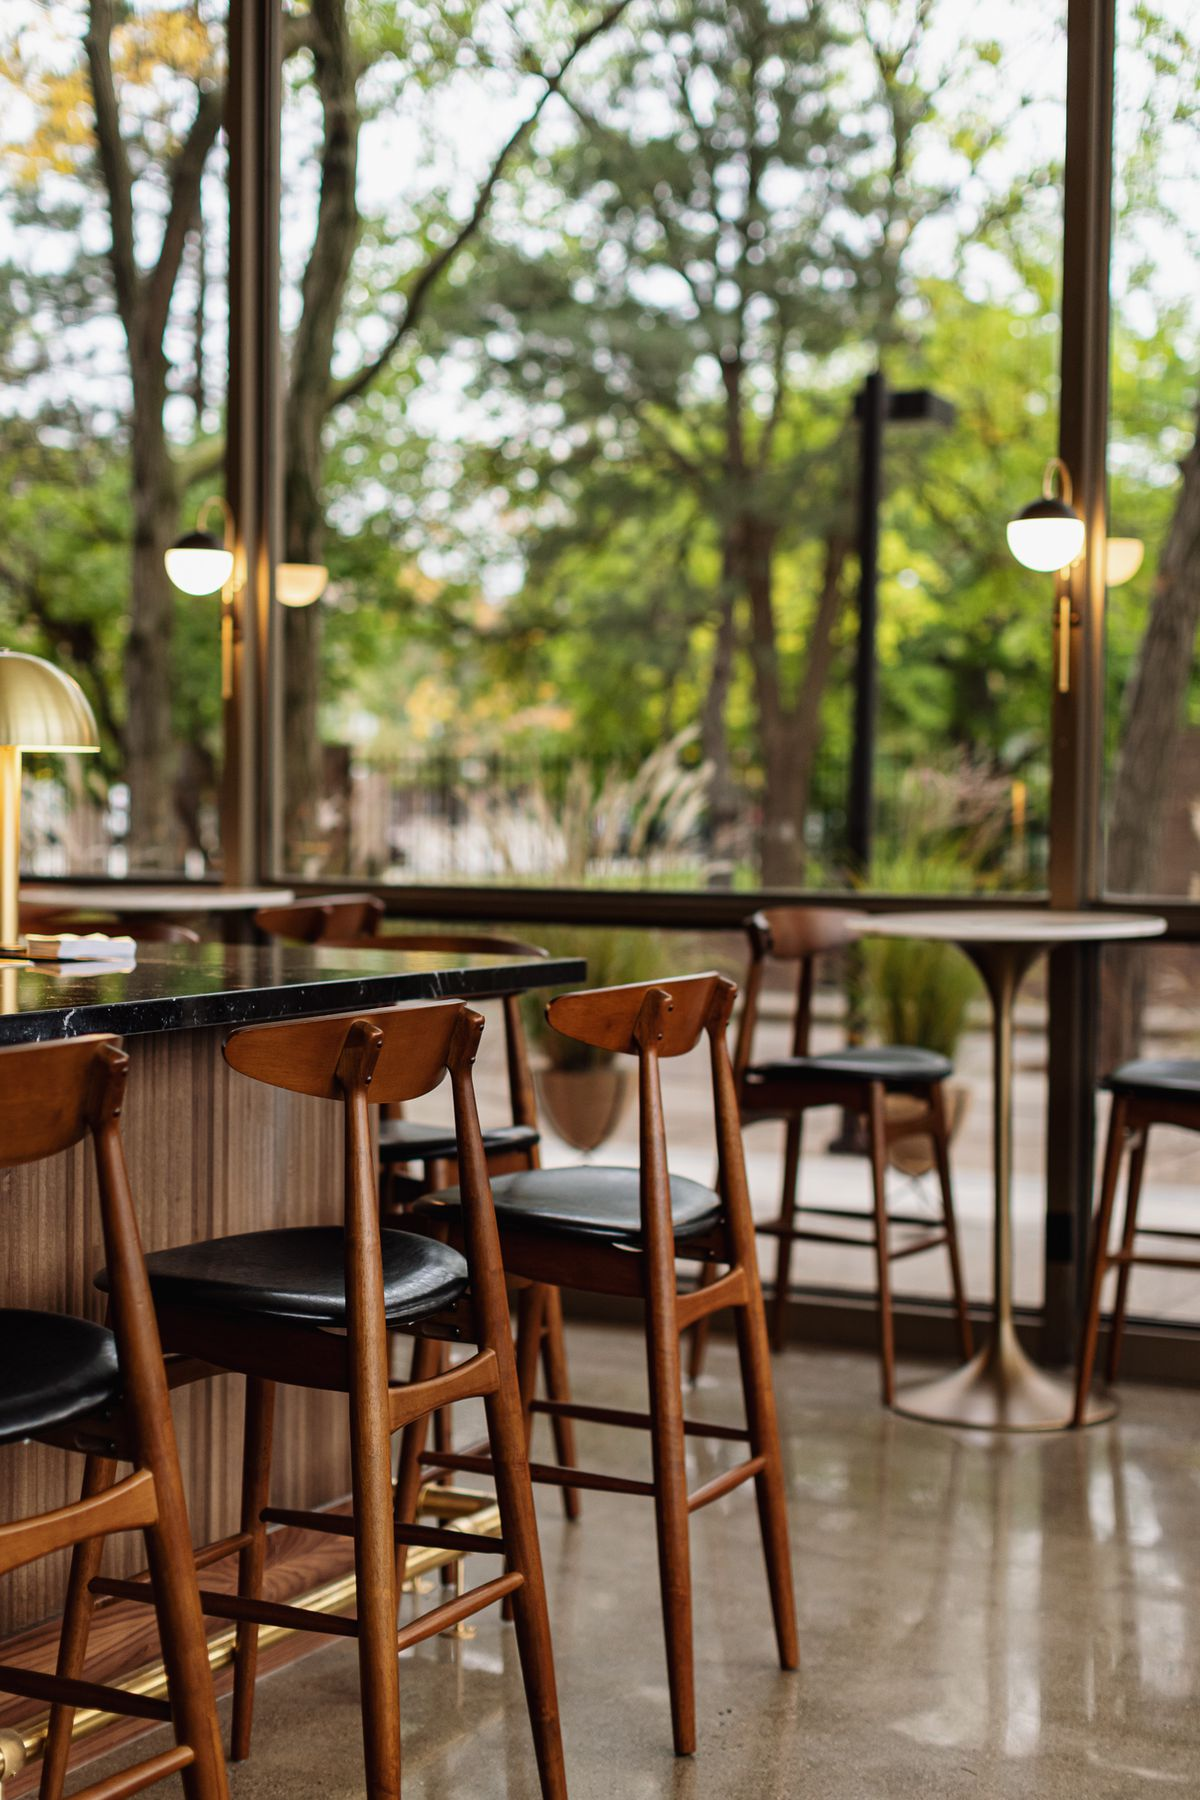 Mid-century style walnut bar chairs line a bar and match chairs surrounding circular two-top tables next to the windows. The chairs have a black seat.